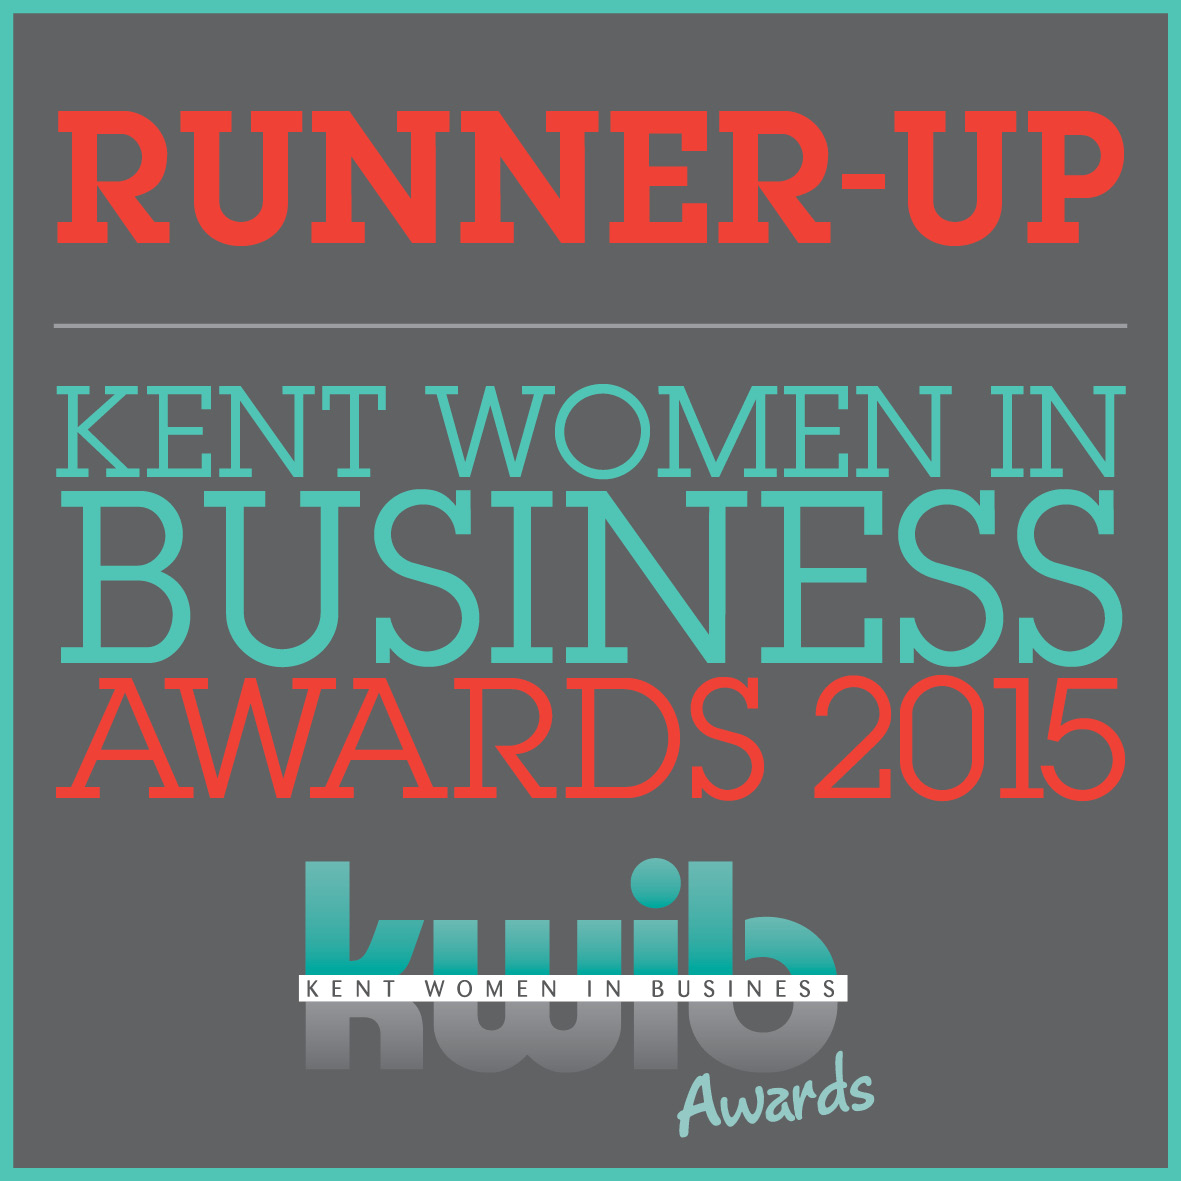 KWIB Kent Women In Business Runner Up Retailer of the Year 2015 Award